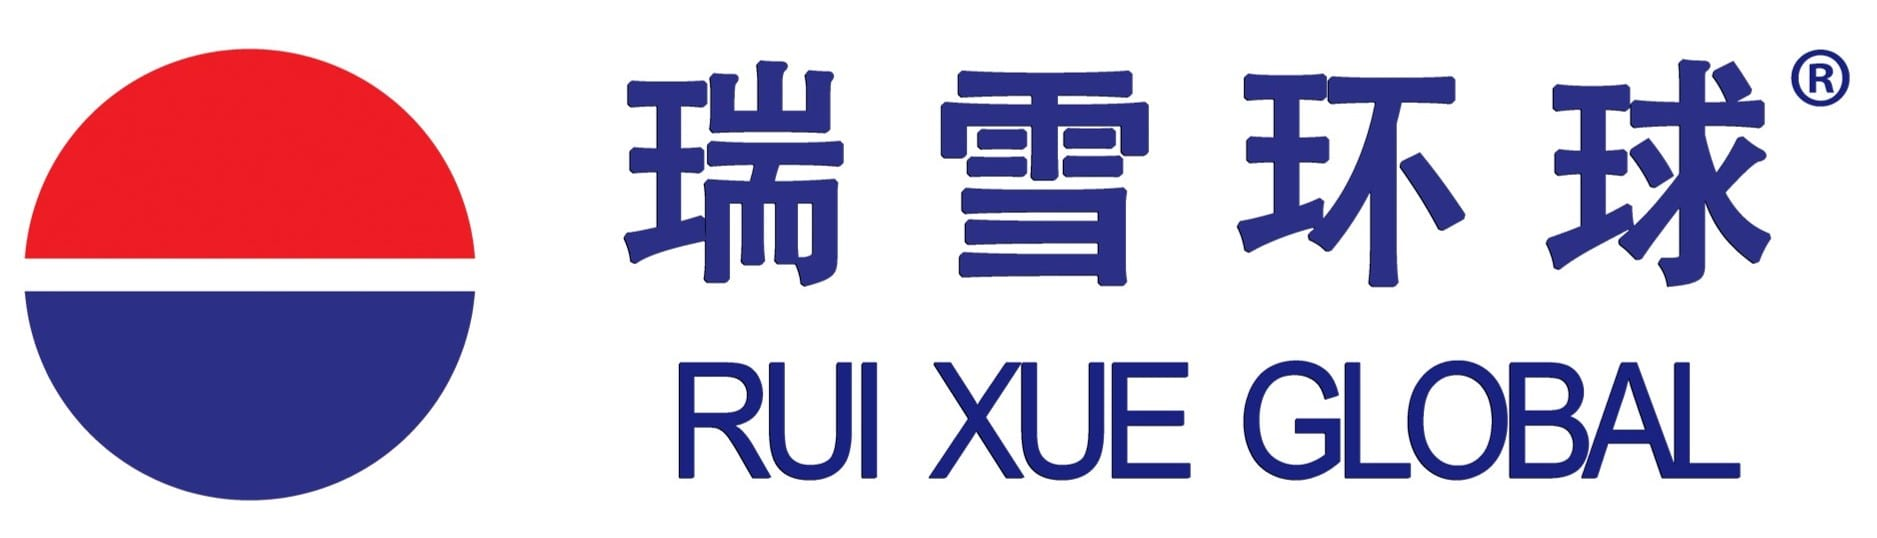 Ruixue Global